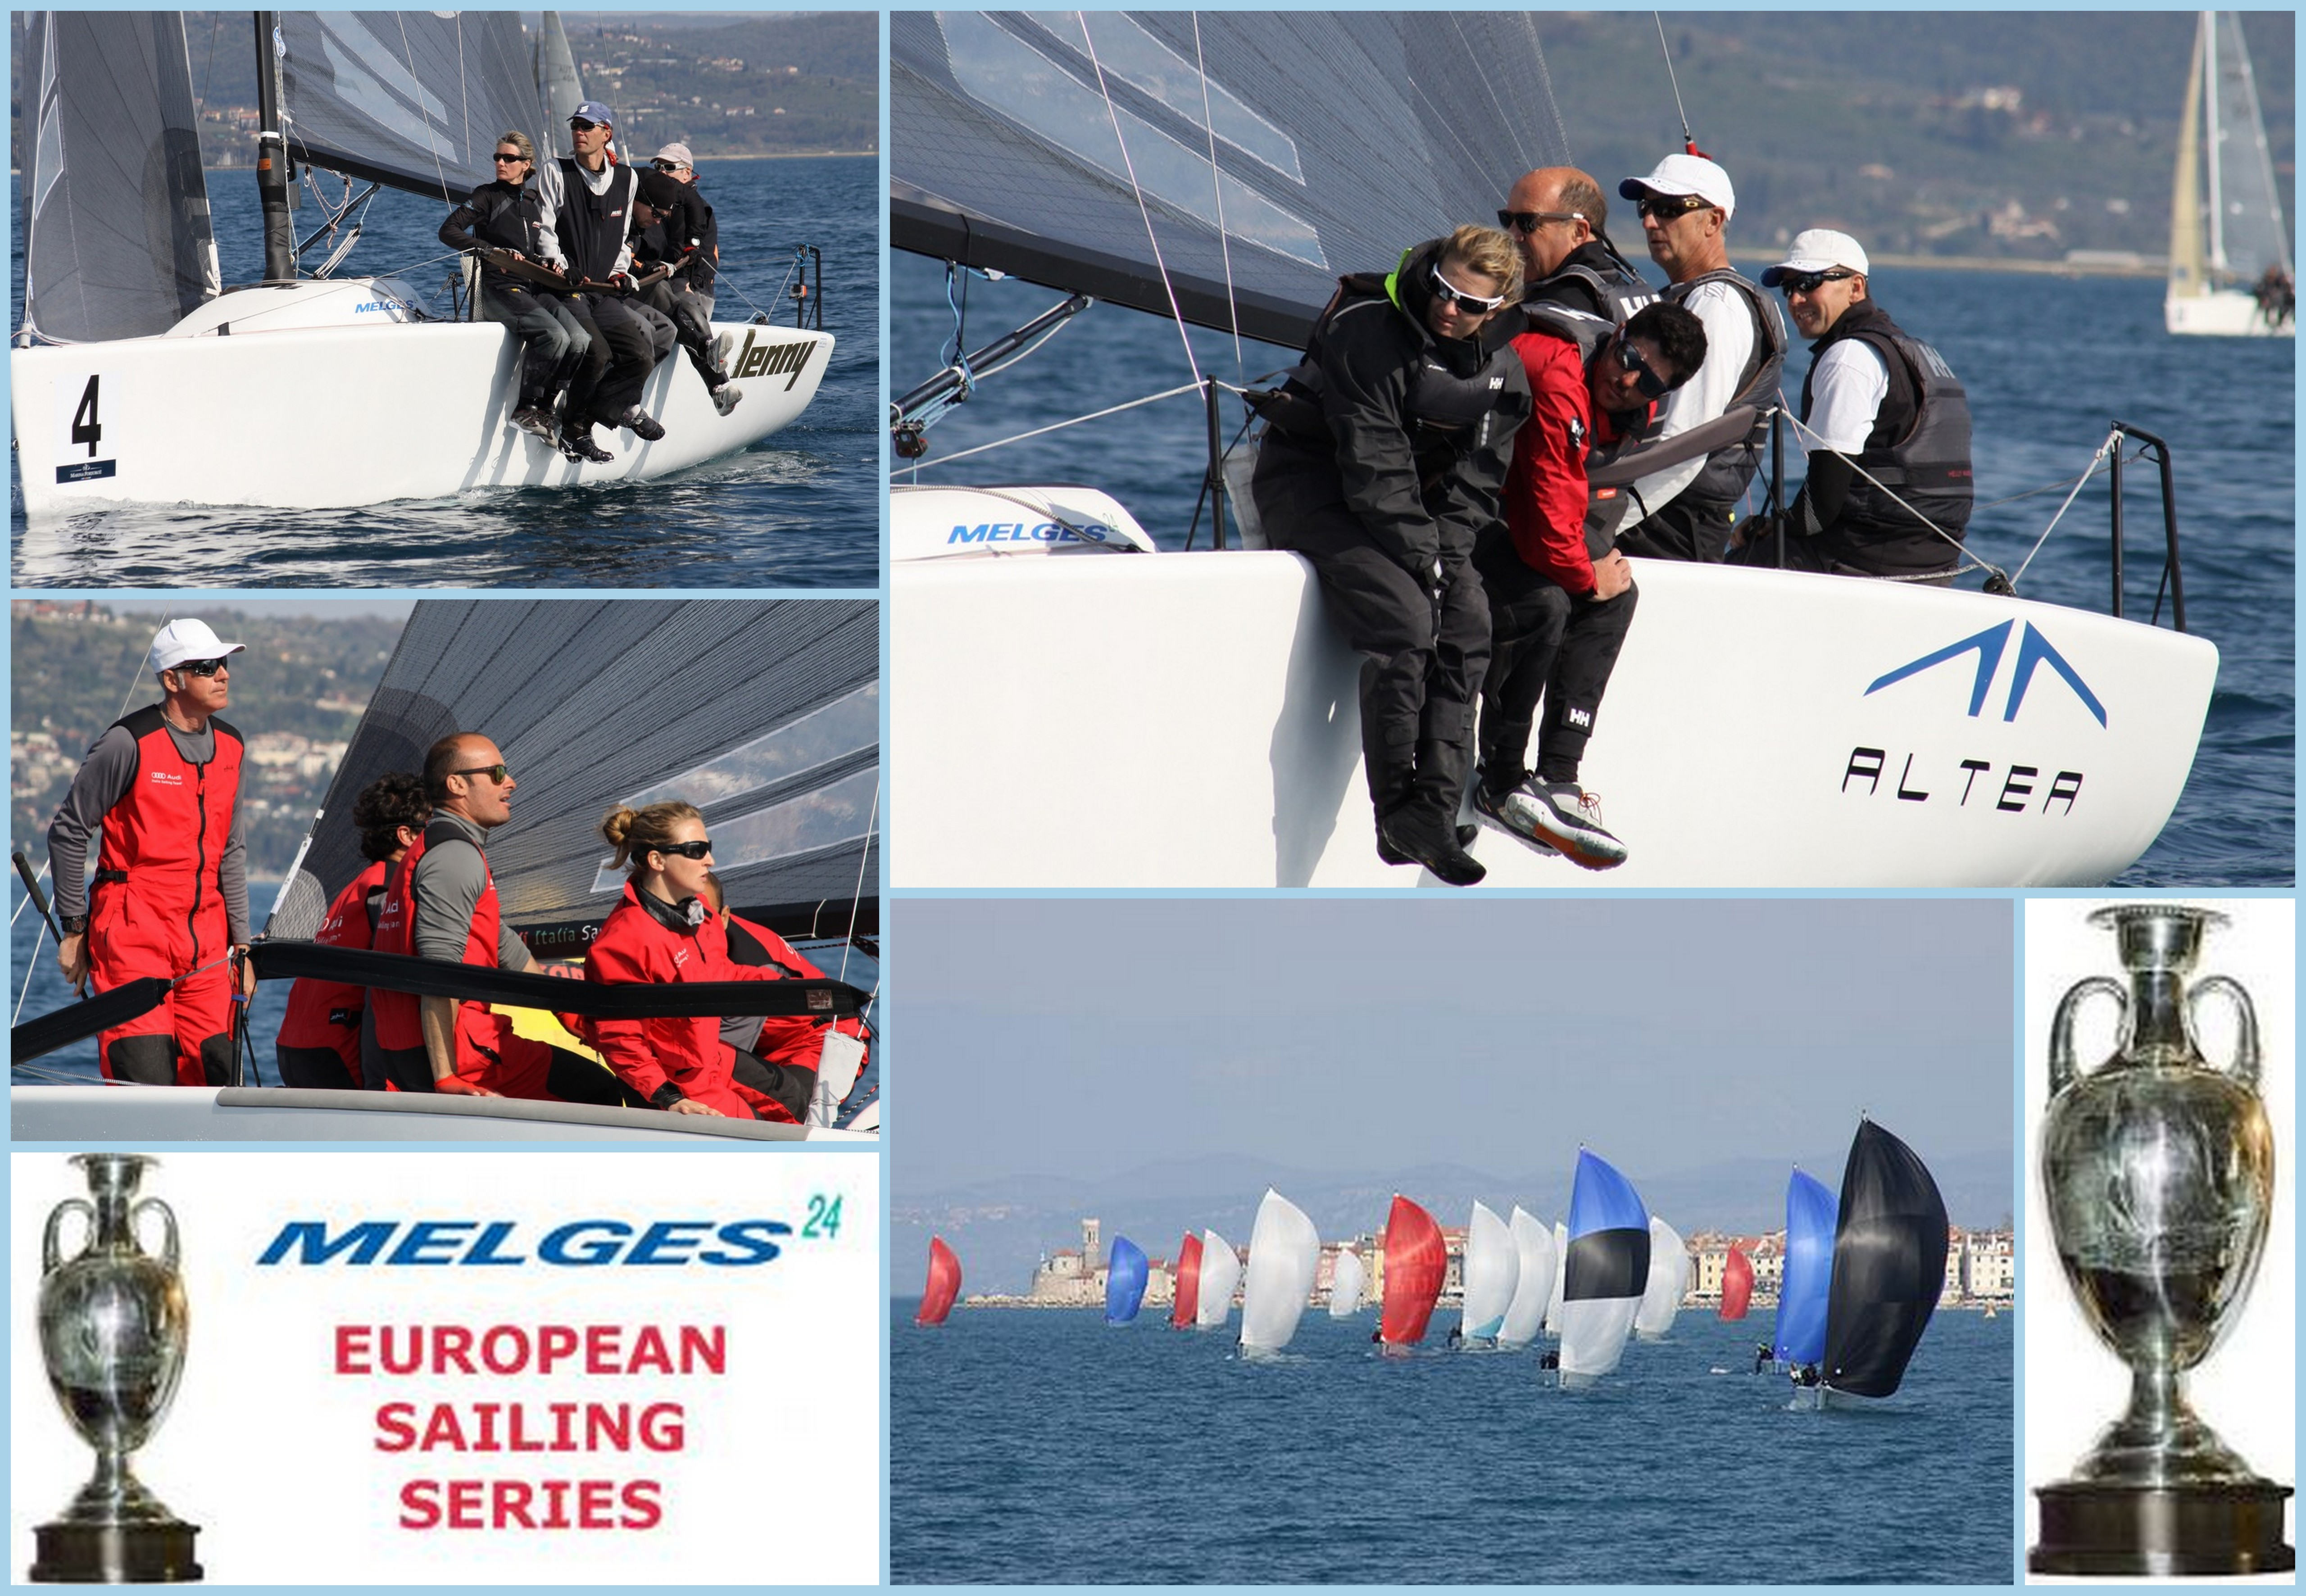 Winners of the Melges 24 European Sialing Series event in Portoroz